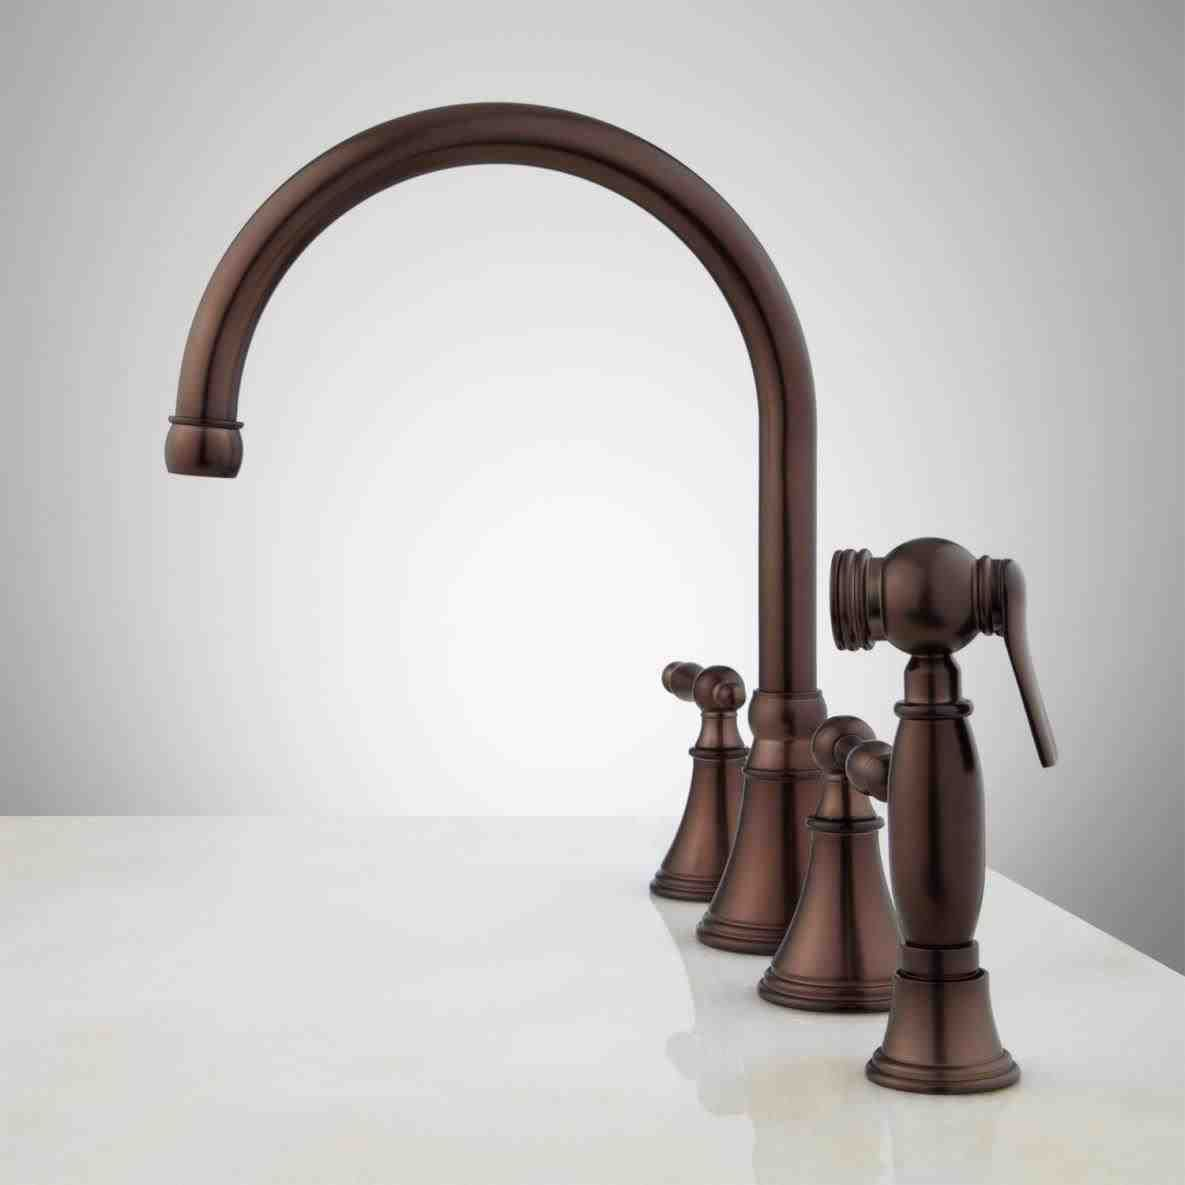 New Post Oil Rubbed Bronze Kitchen Faucet With Soap Dispenser